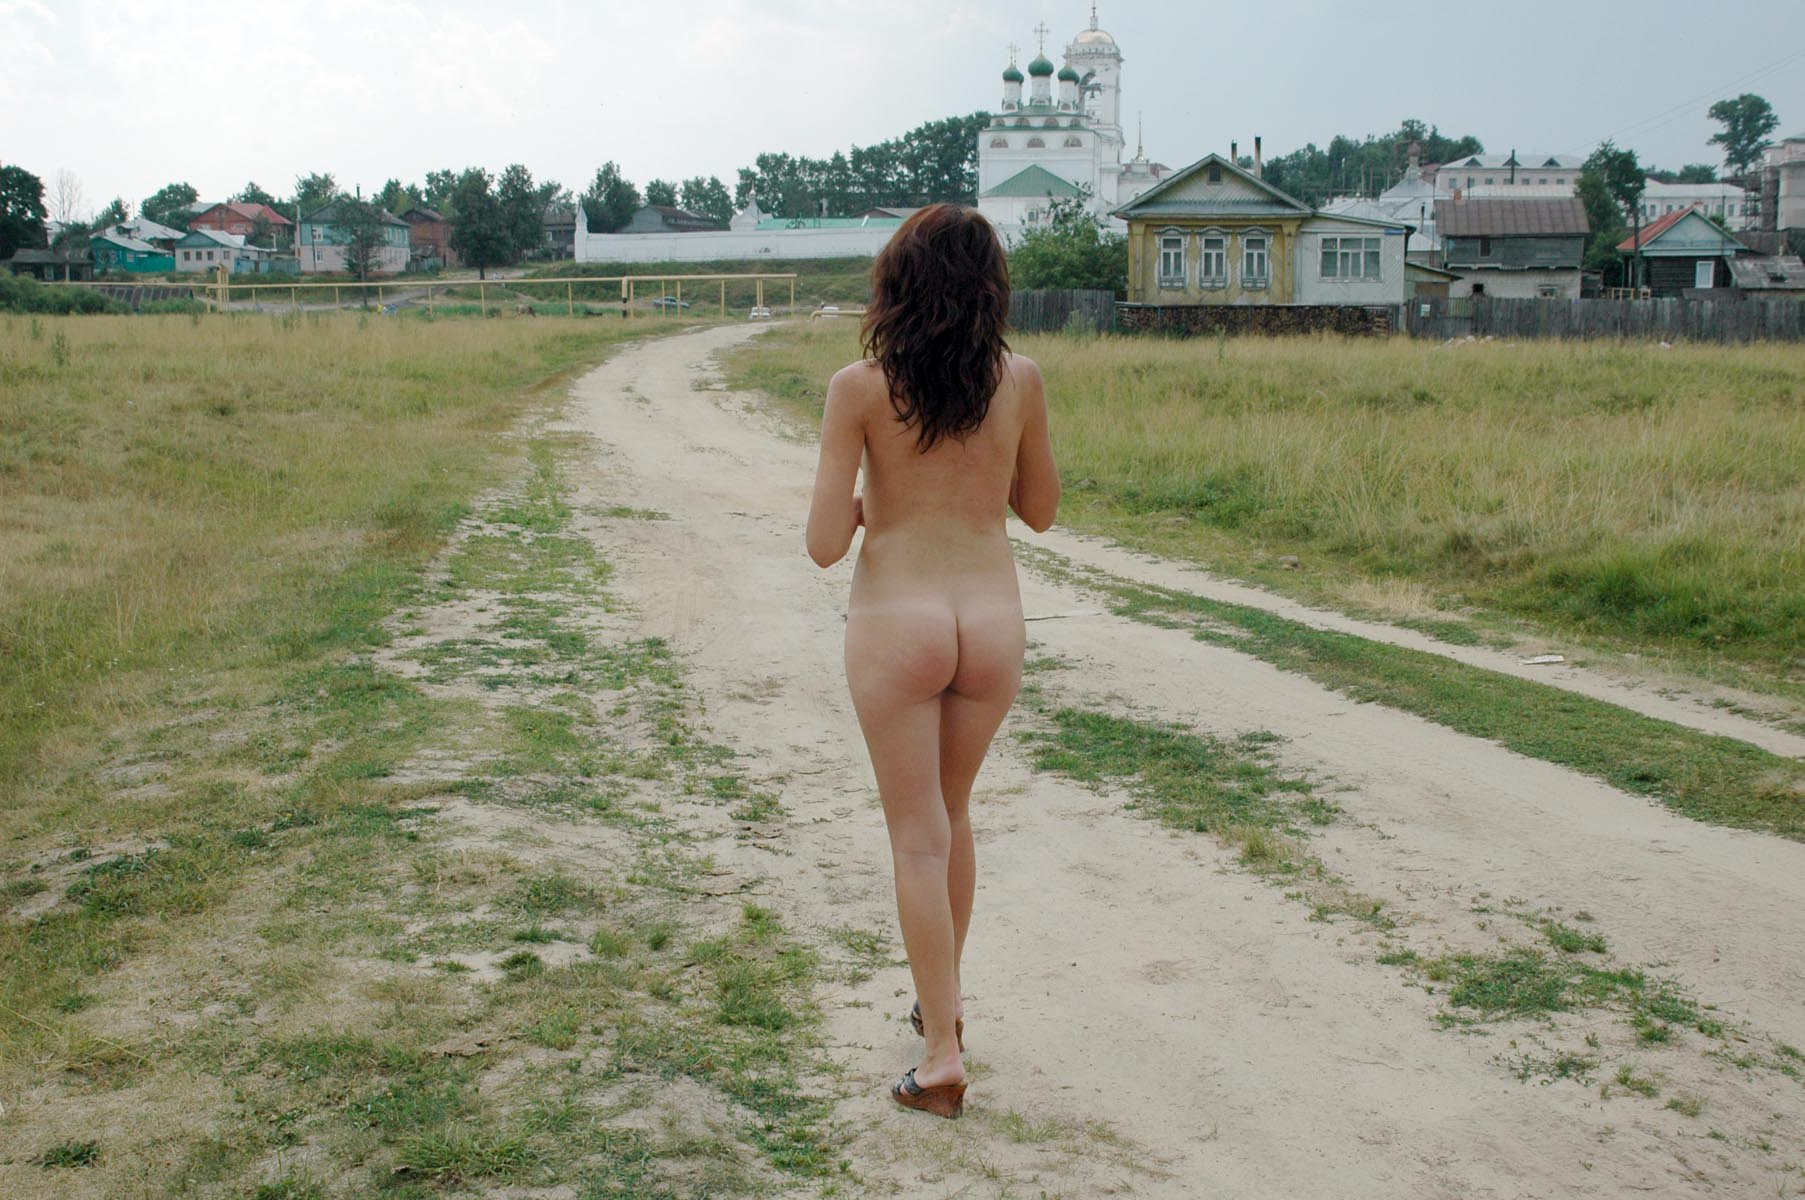 which country in the nude beach